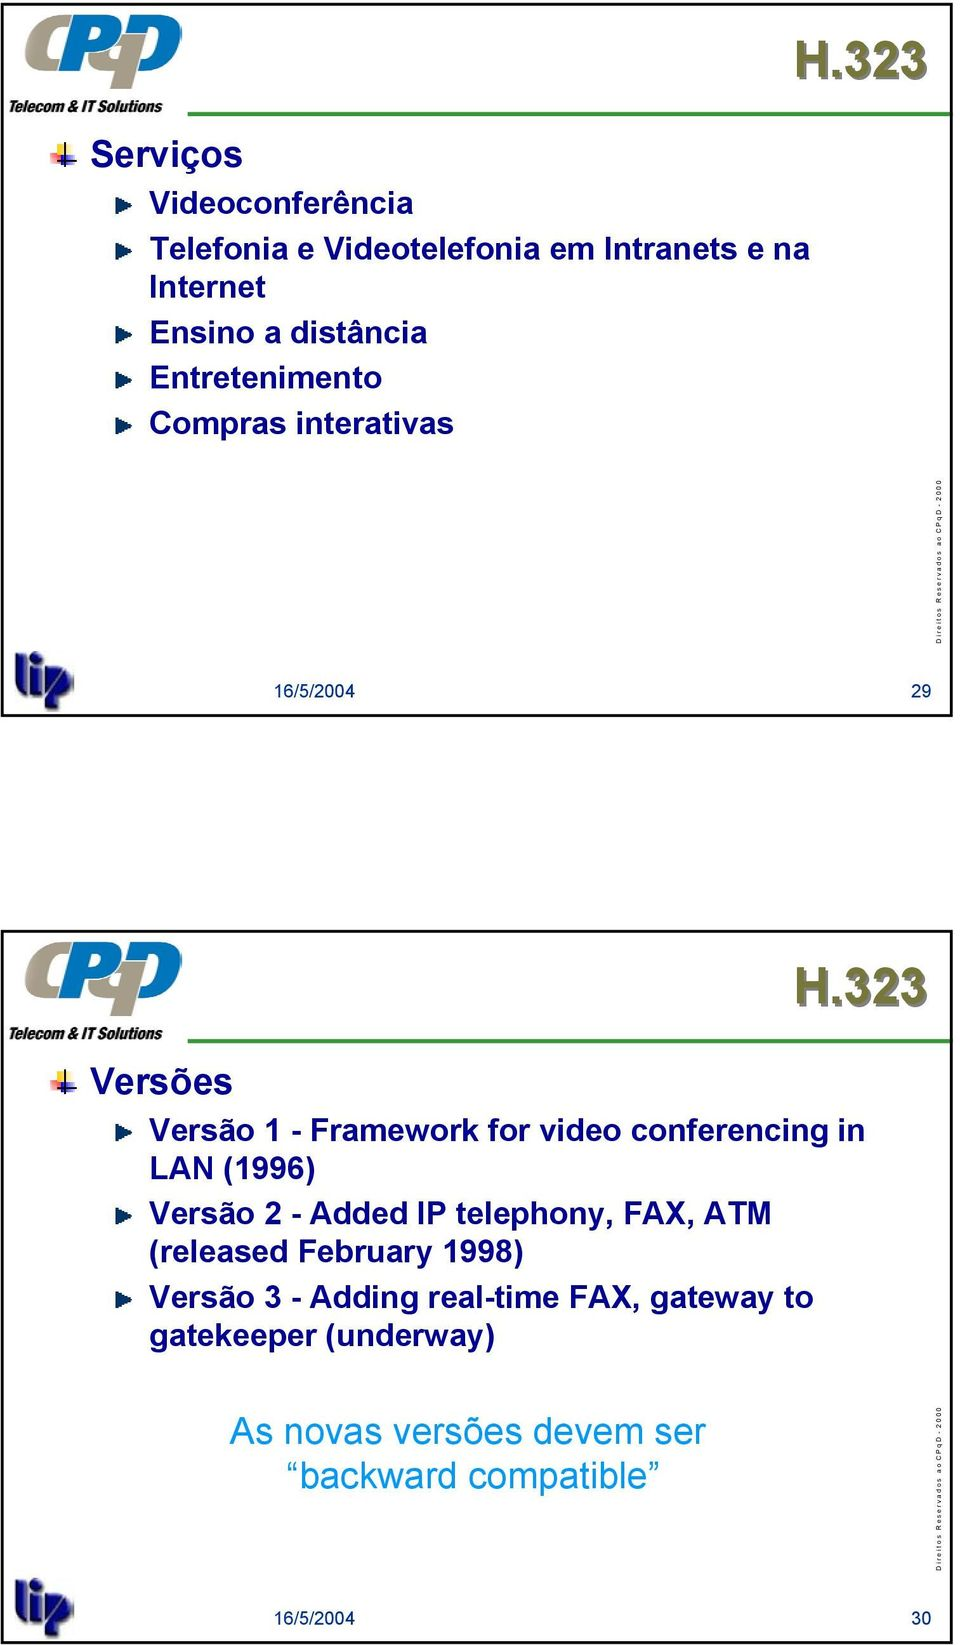 conferencing in LAN (1996) Versão 2 - Added IP telephony, FAX, ATM (released February 1998)